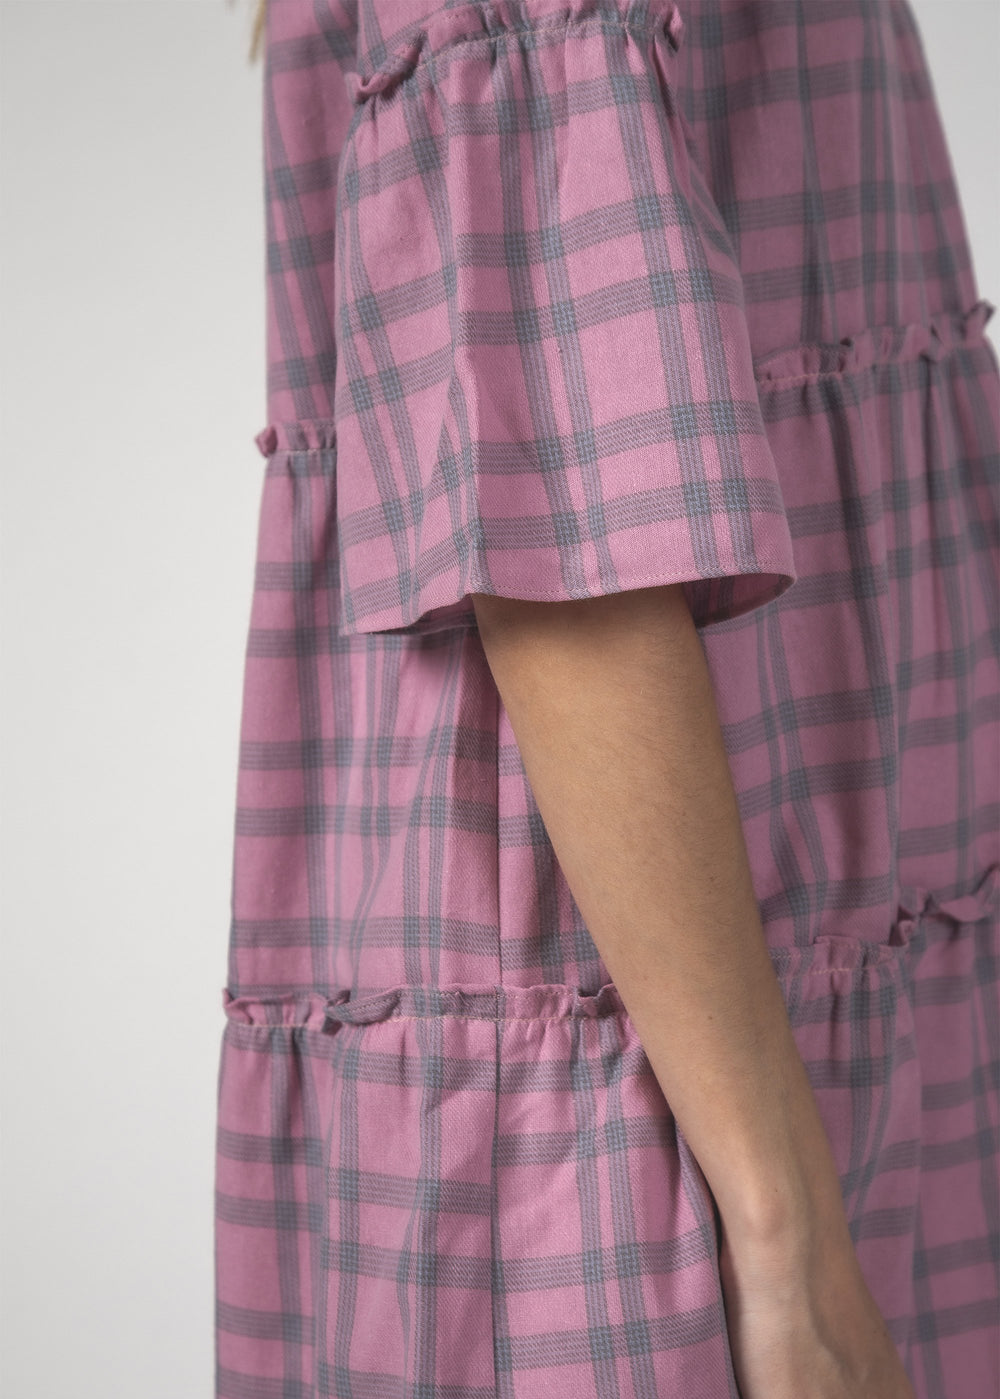 EASYGOING DRESS - Blush Check